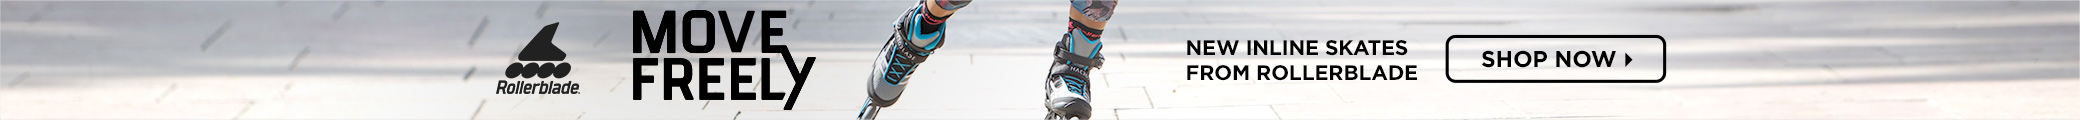 Move Freely: New Inline Skates From Rollerblade